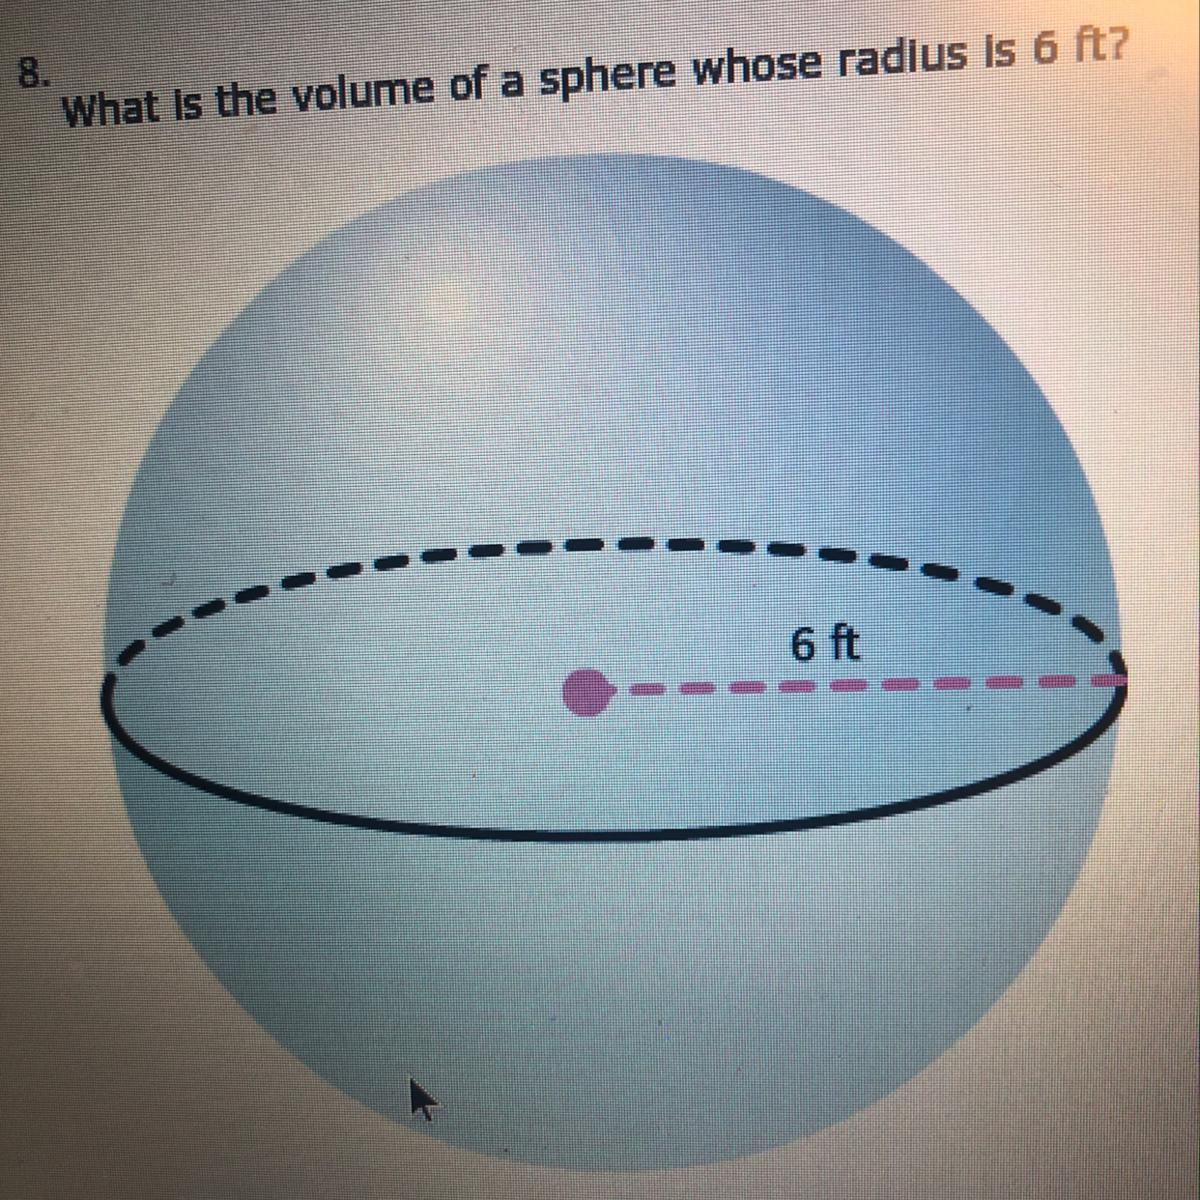 What Is The Volume Of A Sphere Whose Radius Is 6 Ft